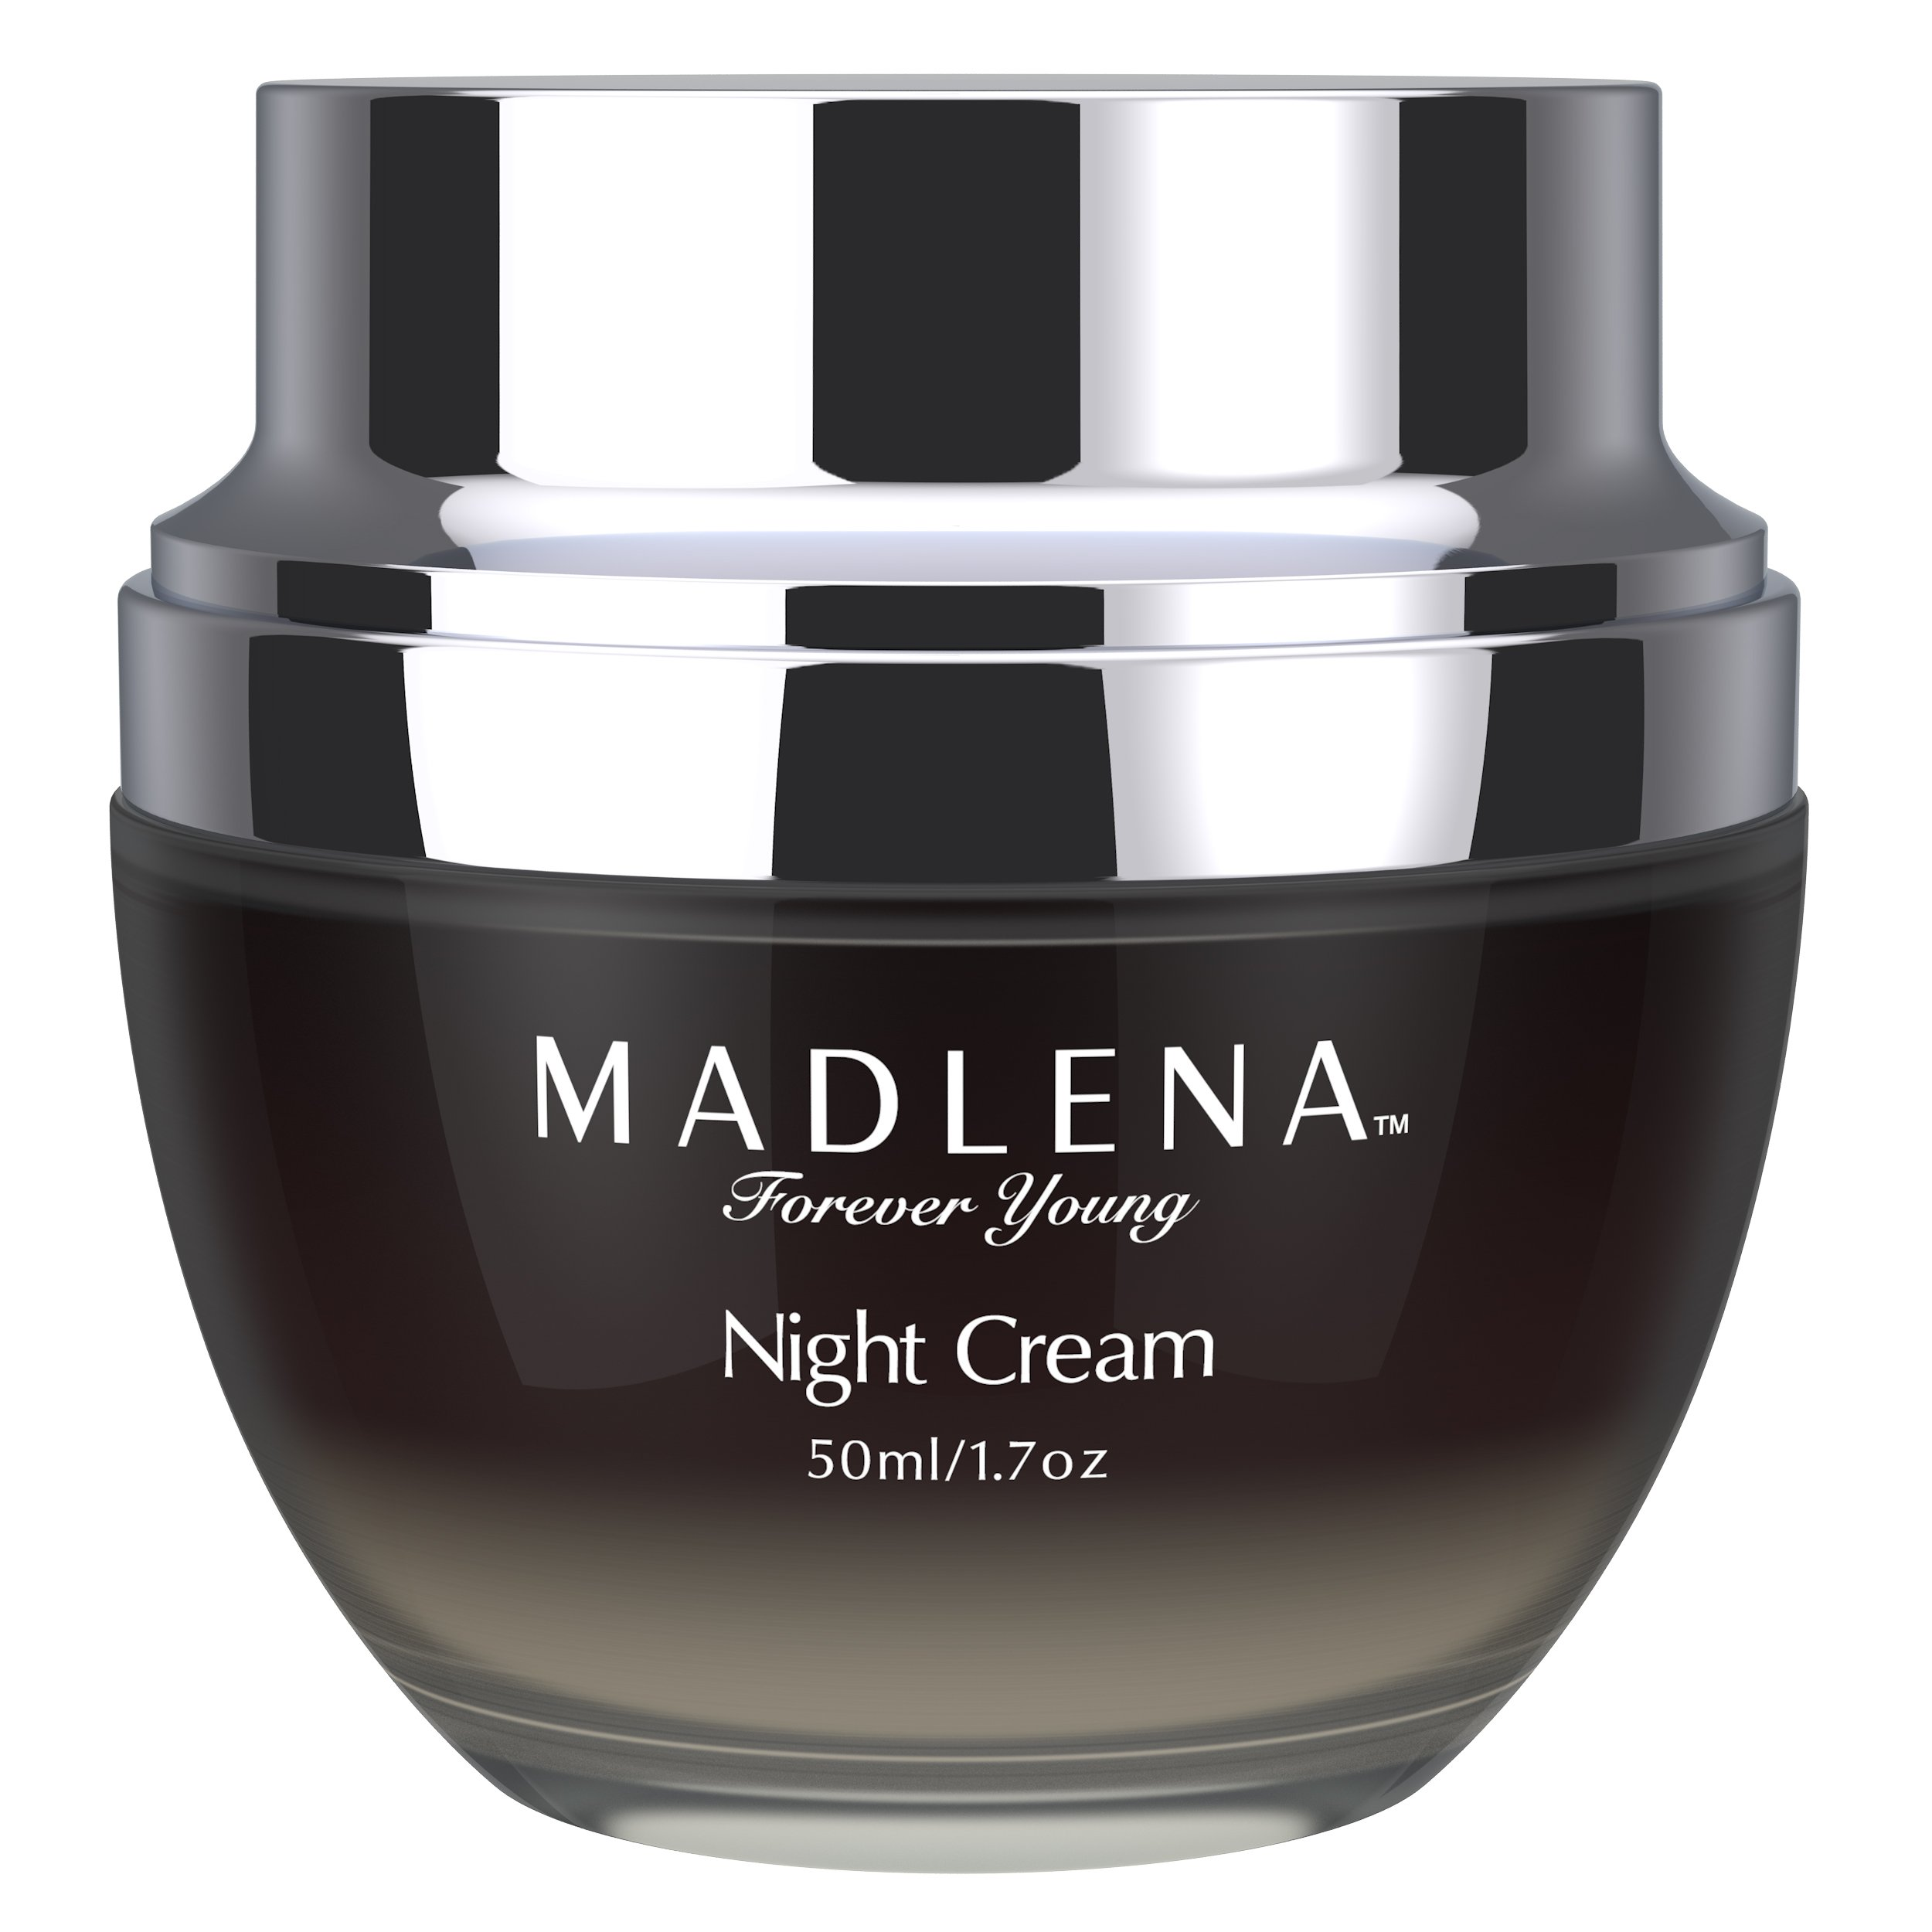 Madlena Advanced Anti-Aging Face & Neck Night Cream for Women - Powerful Anti-Wrinkle Beauty Care - Fade Lines, Repair Blemishes, Restore Skin Tone & Boosts Cell Regeneration While You Sleep